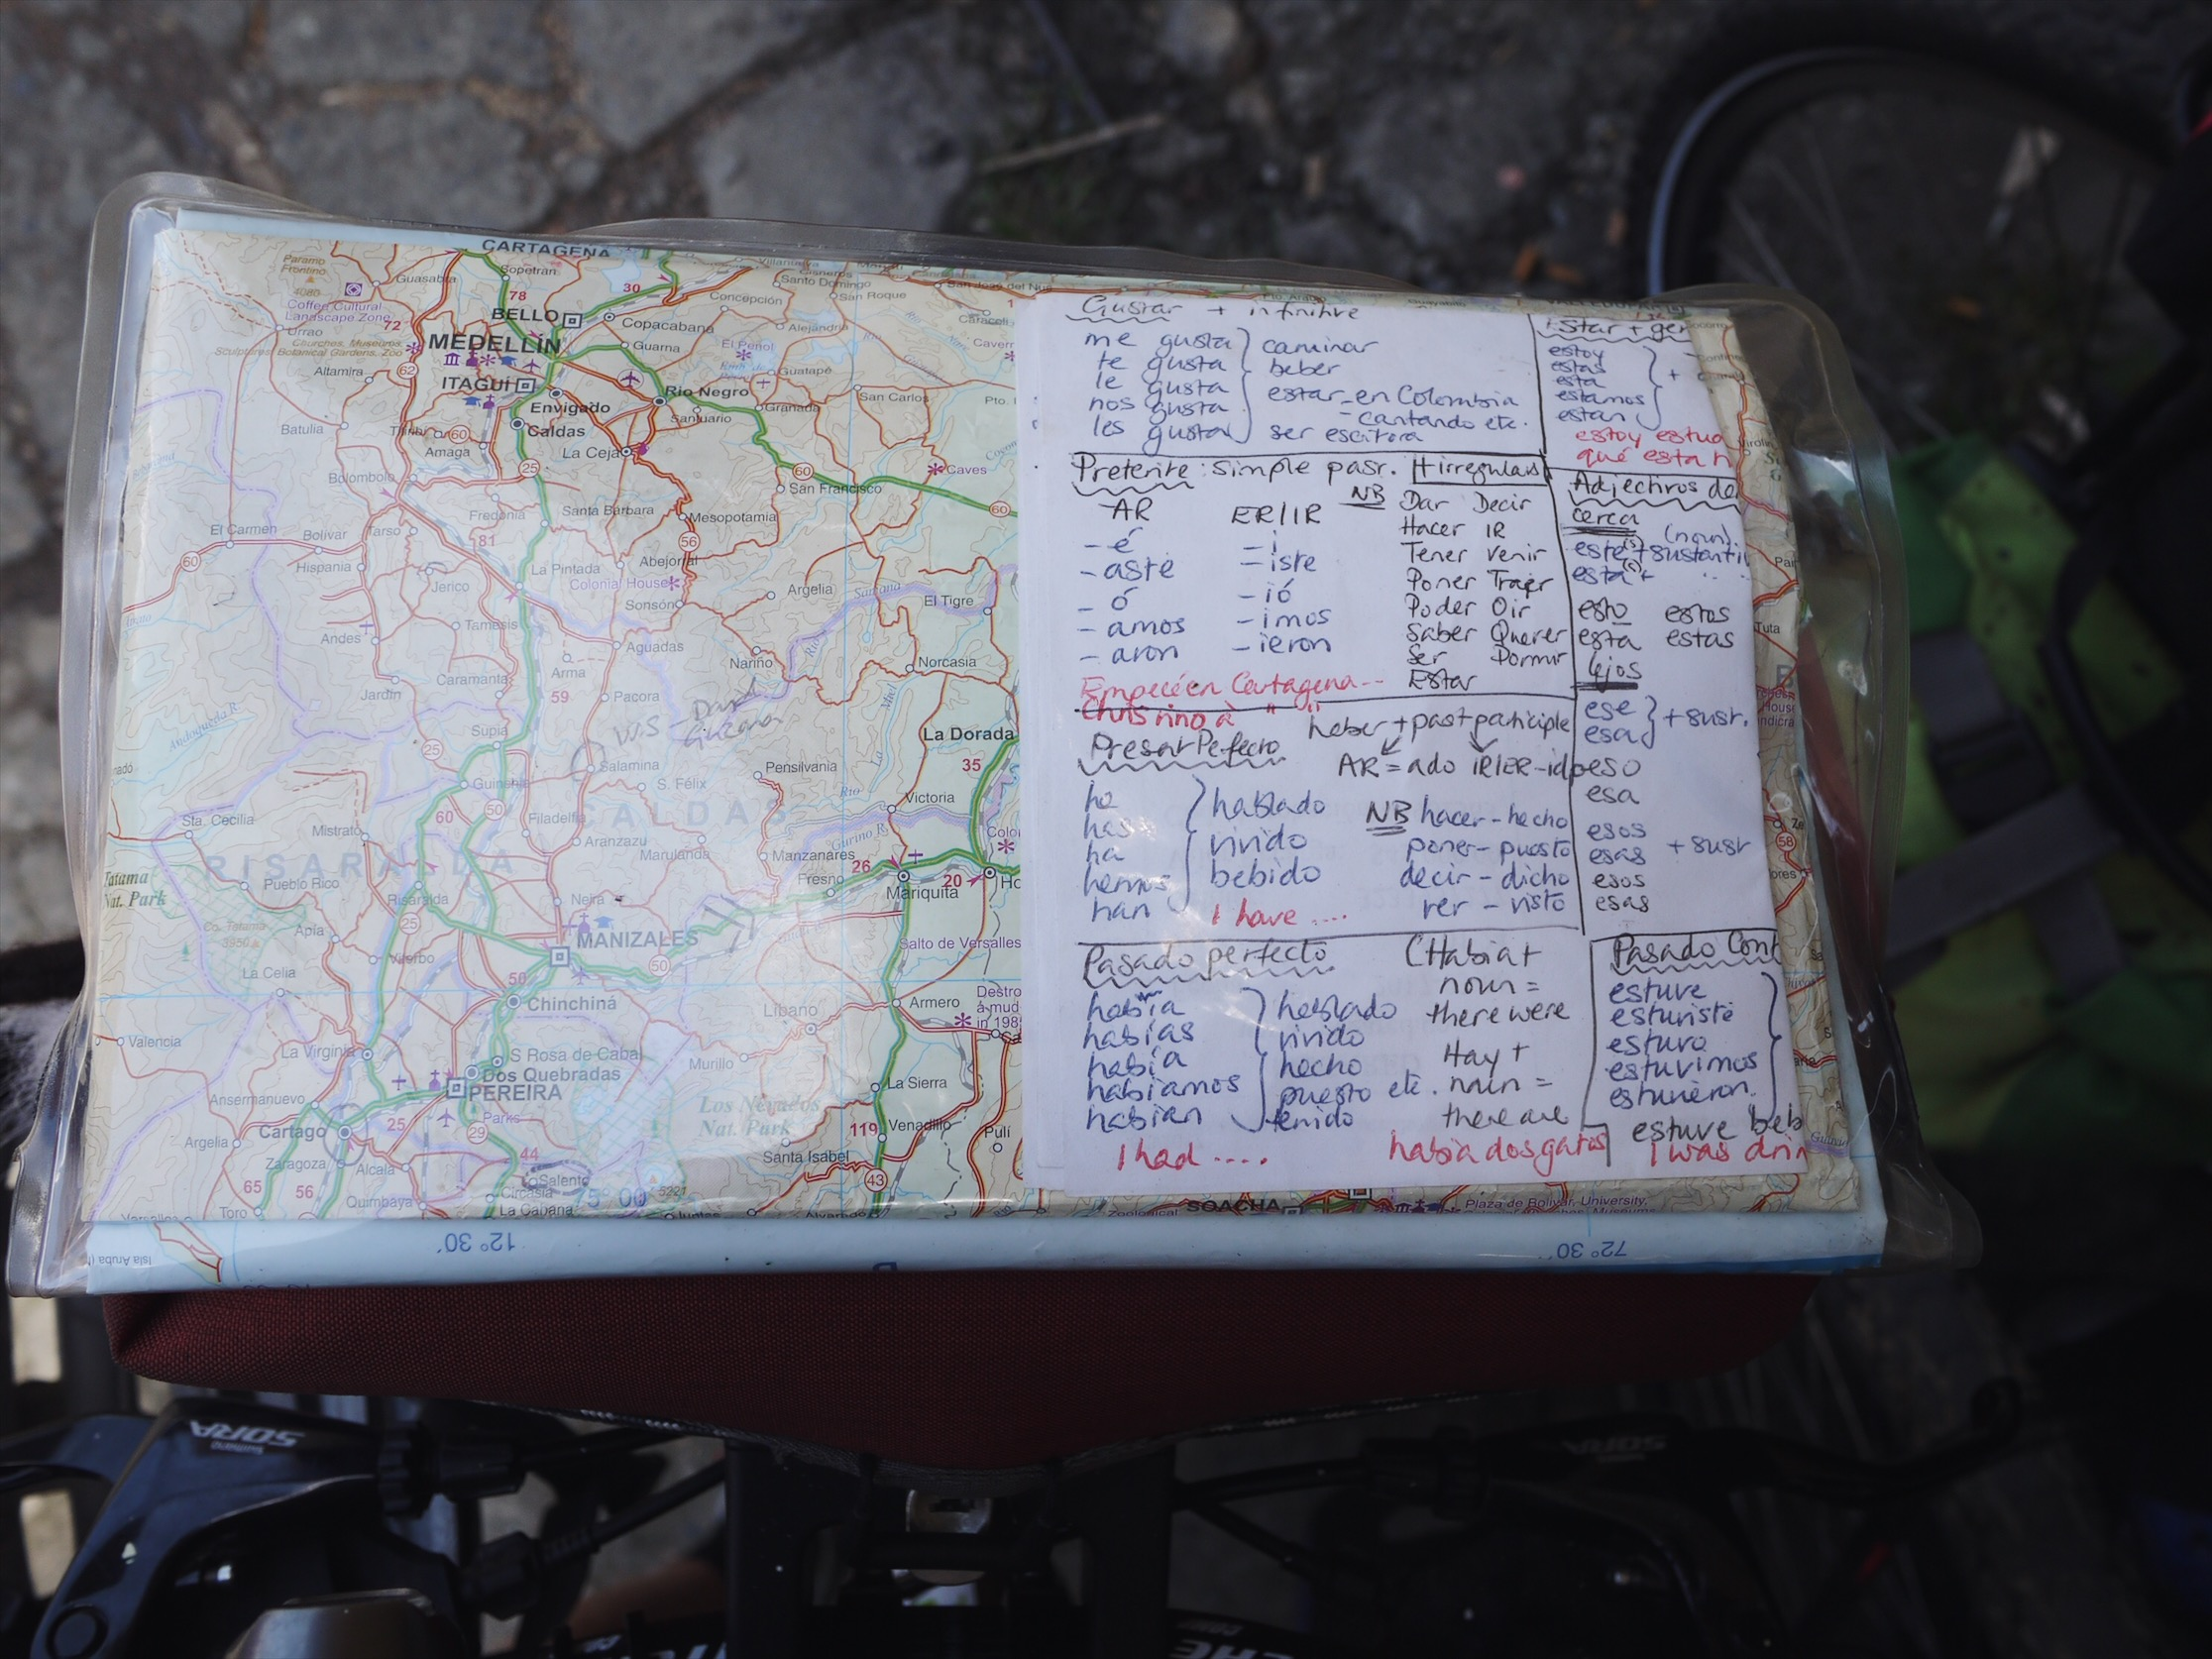 Fellow bike traveler Kate staring down at the navigational bare essentials: roads and verbs.